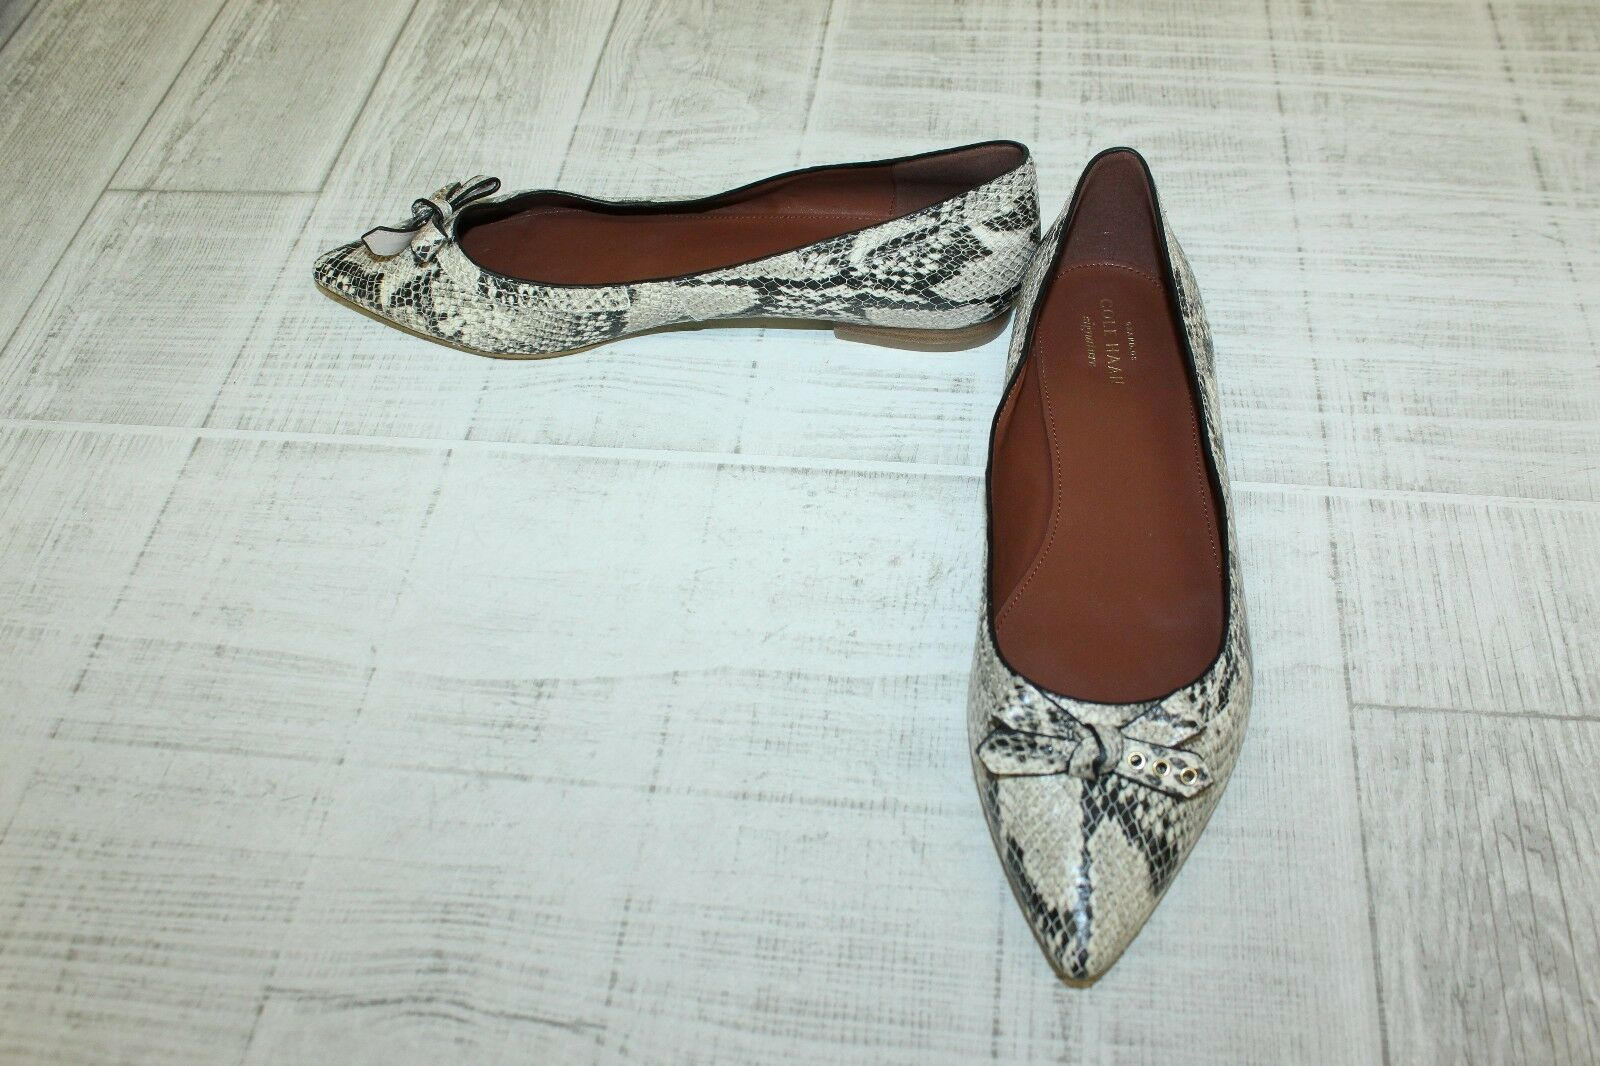 Cole Haan Size Alice Snake Print Skimmer Shoes, Donna - Size Haan 8.5 B, Brown/Cream 6e6a2d